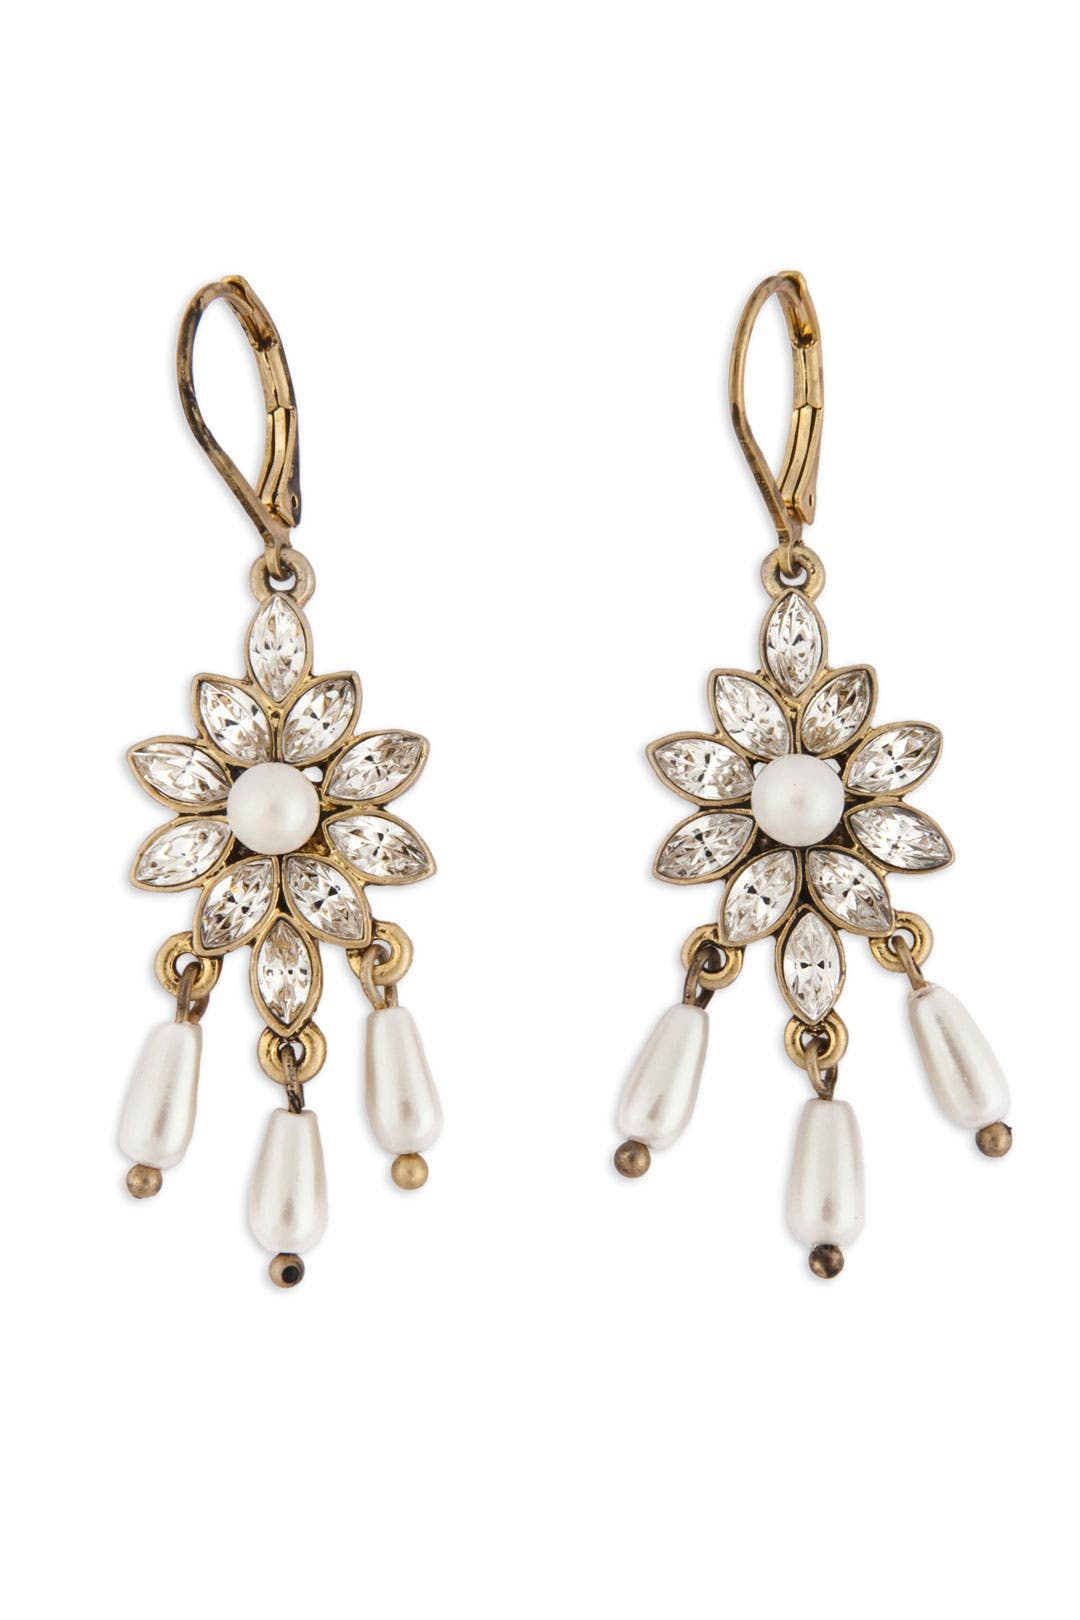 Delicate Pearl and Flower Earrings by Nicole Miller Accessories